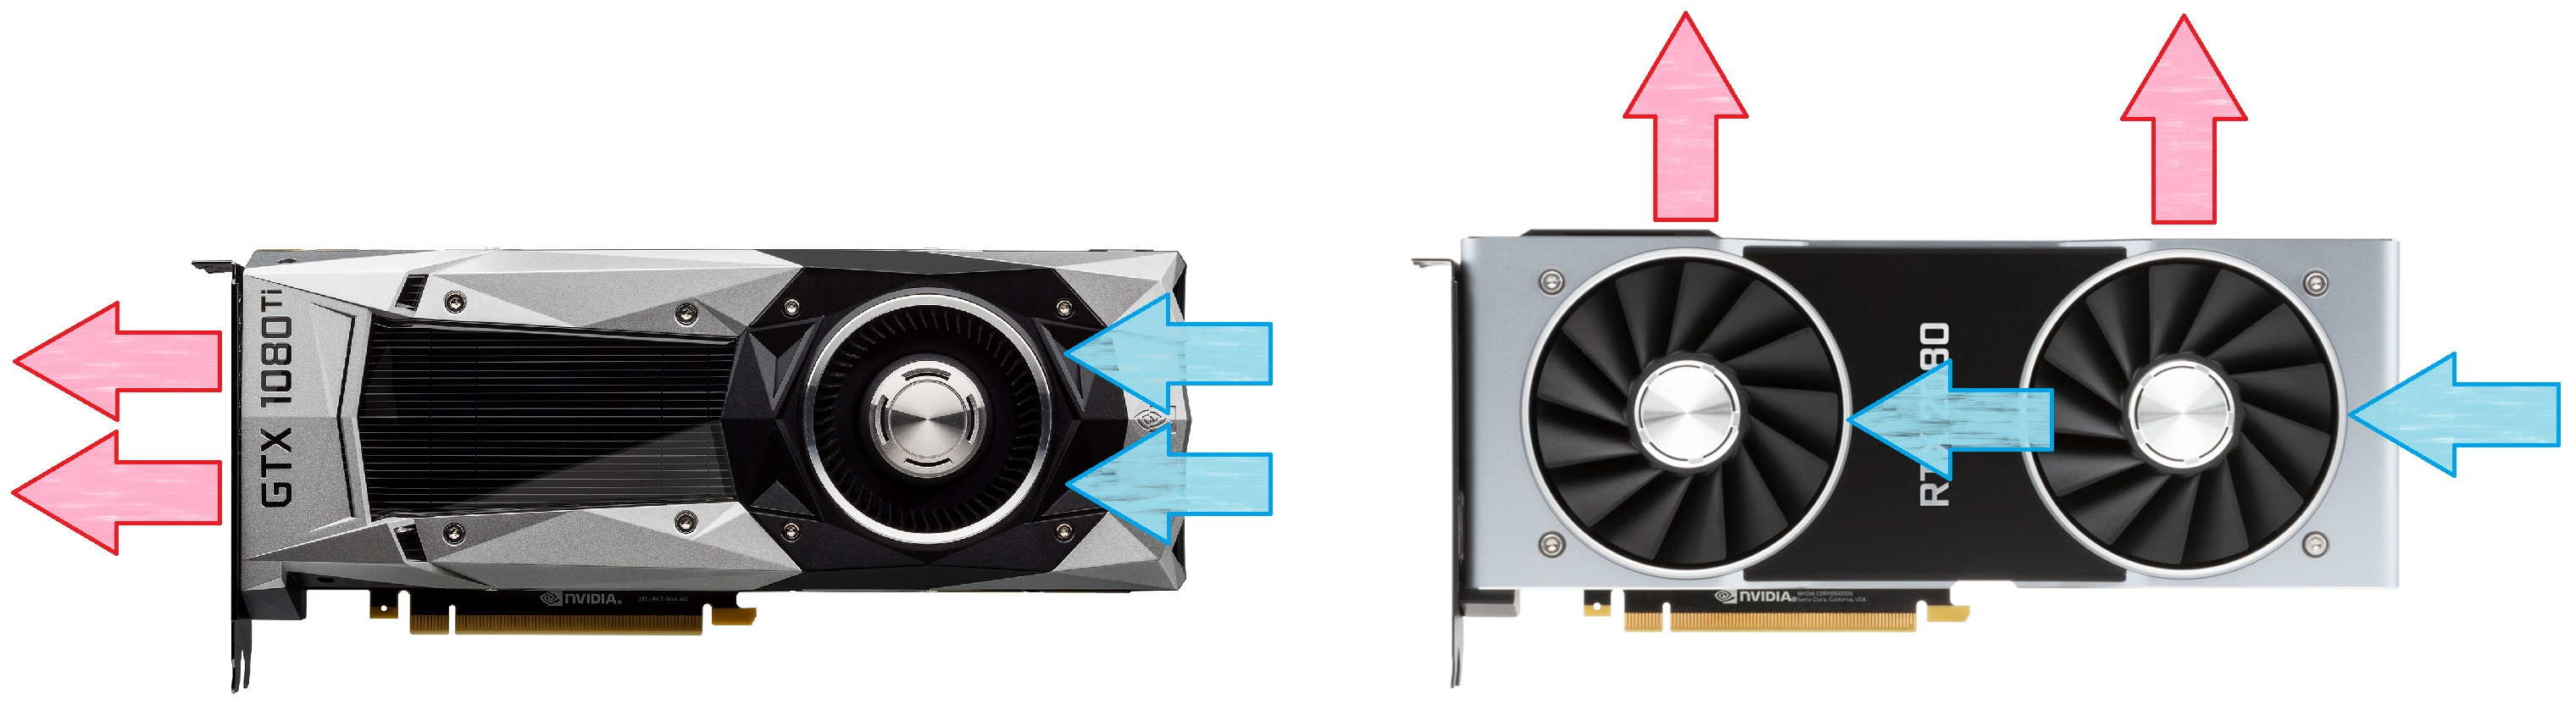 Airflow Pattern on GeForce GTX 1080 Ti and RTX 2080 Founders Edition Cards